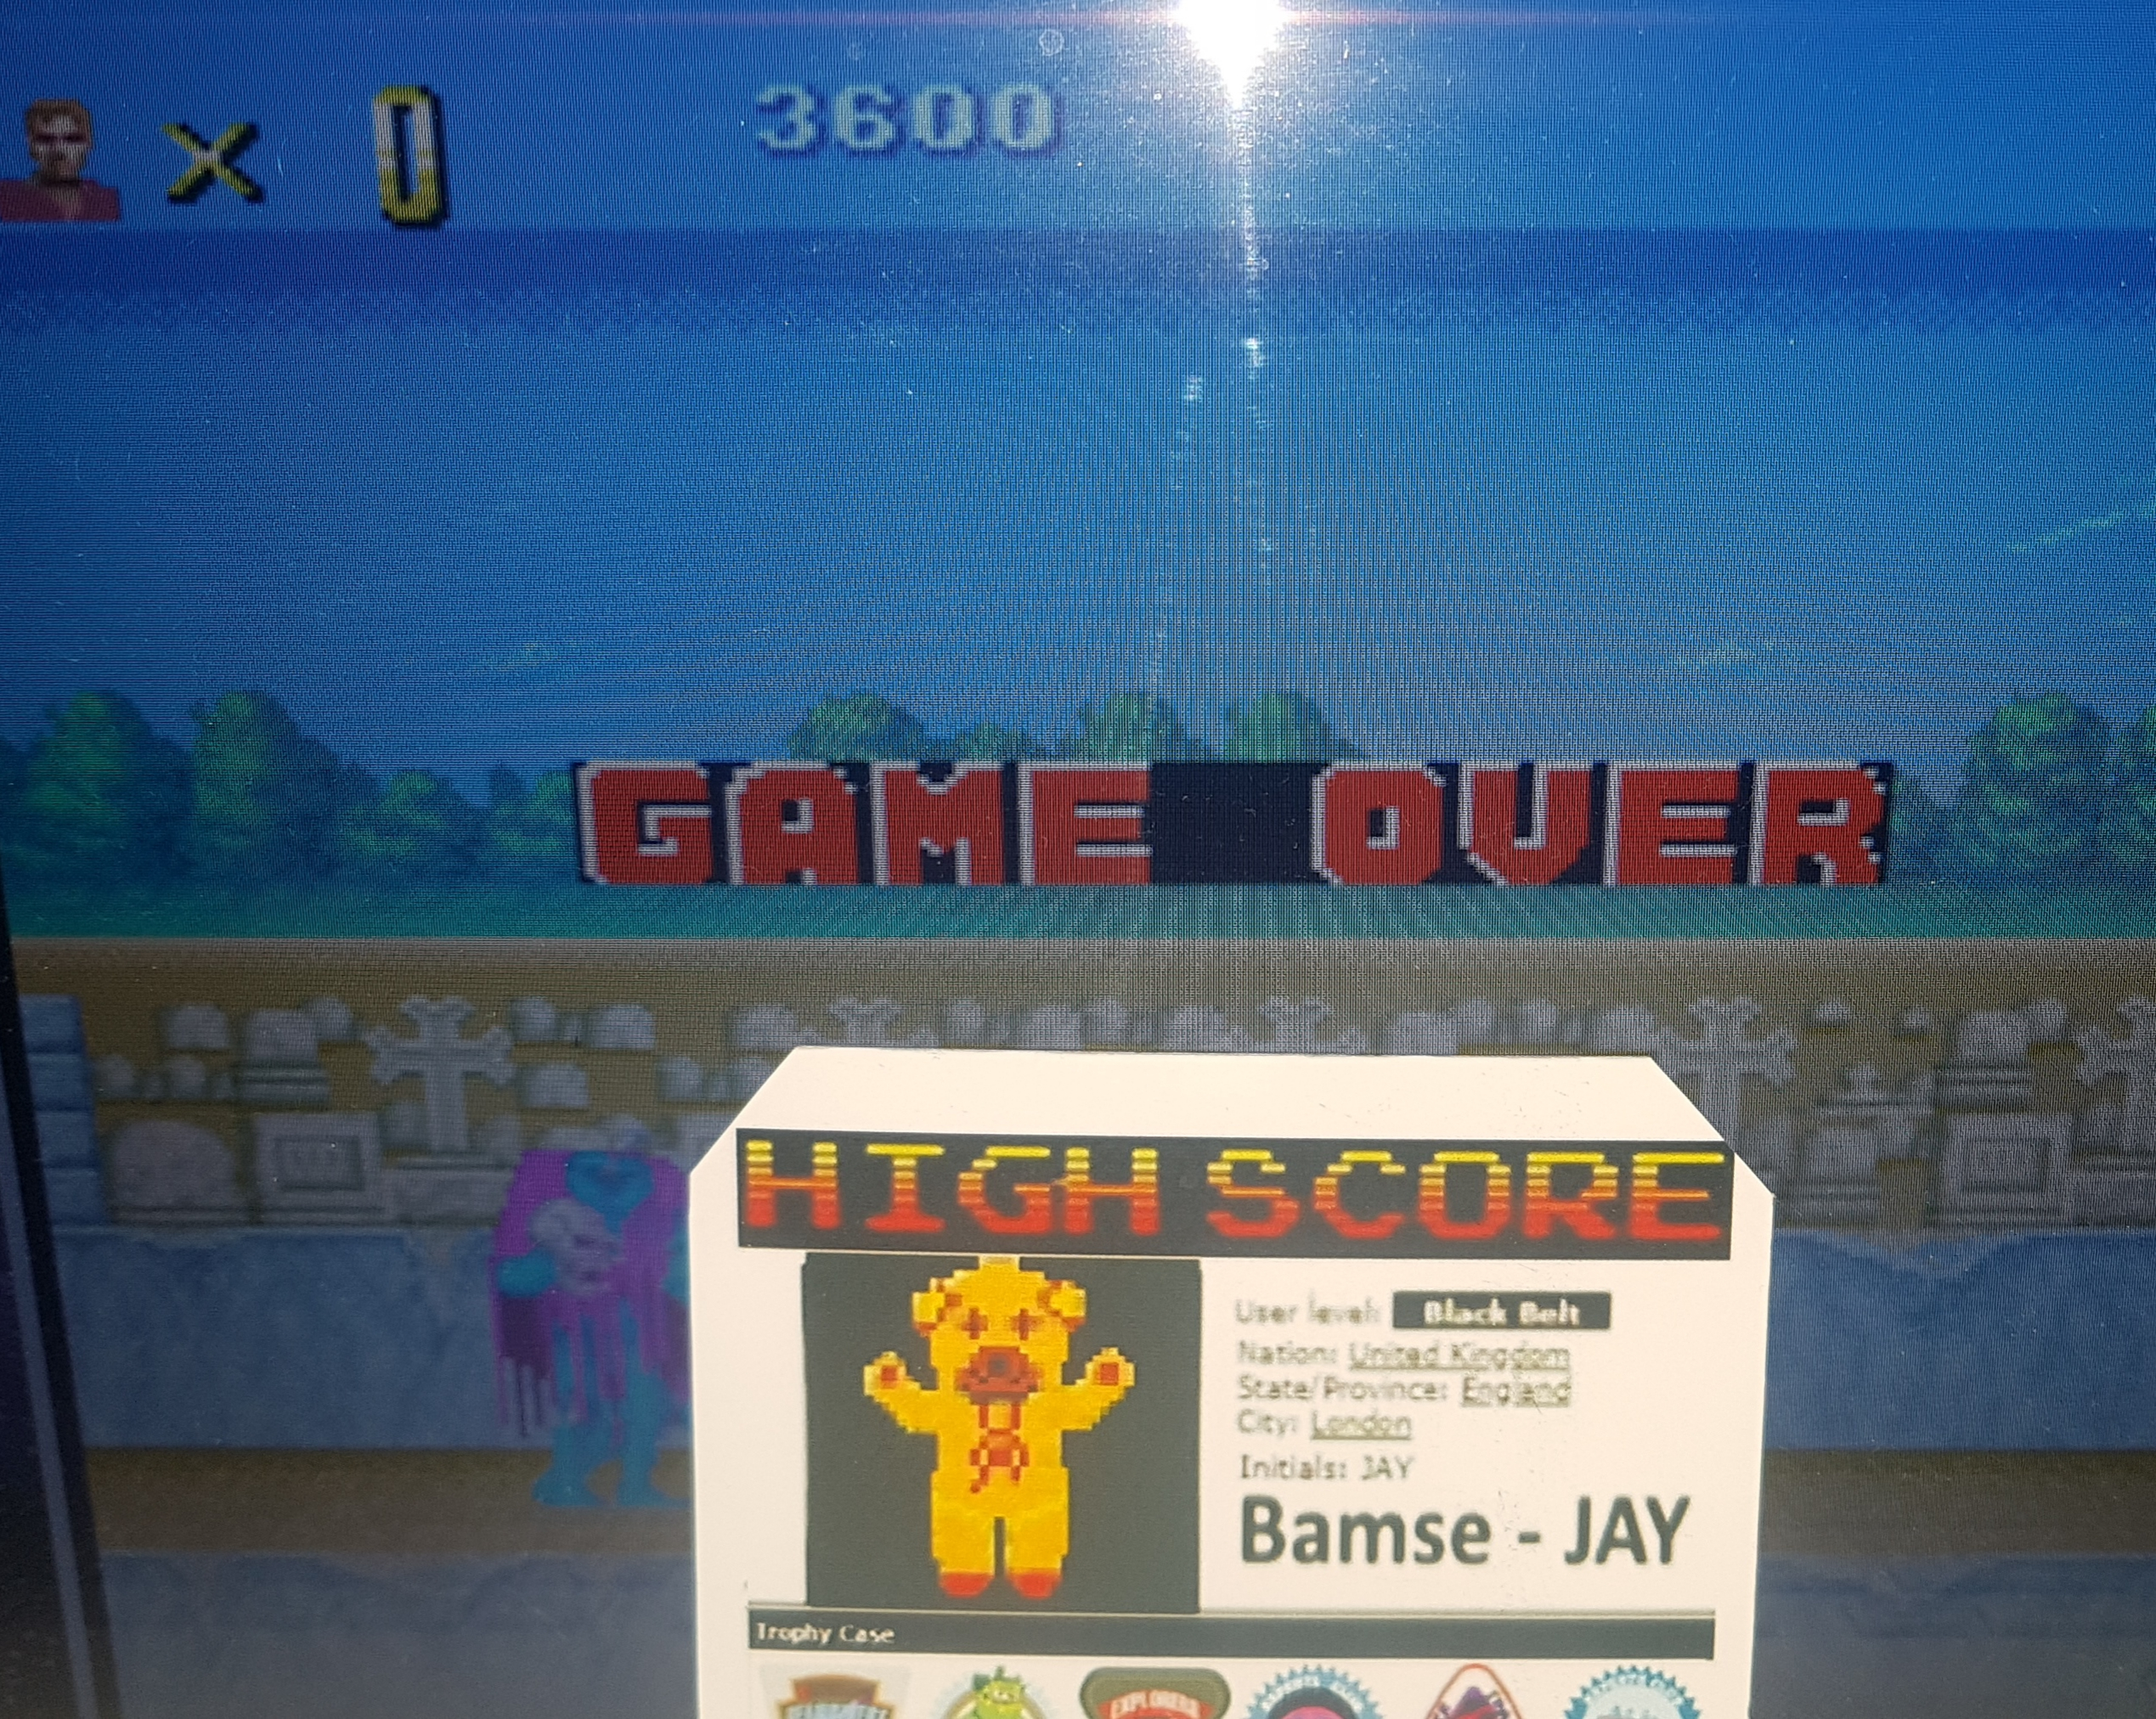 Bamse: Altered Beast (TurboGrafx-16/PC Engine Emulated) 3,600 points on 2019-10-18 15:01:22